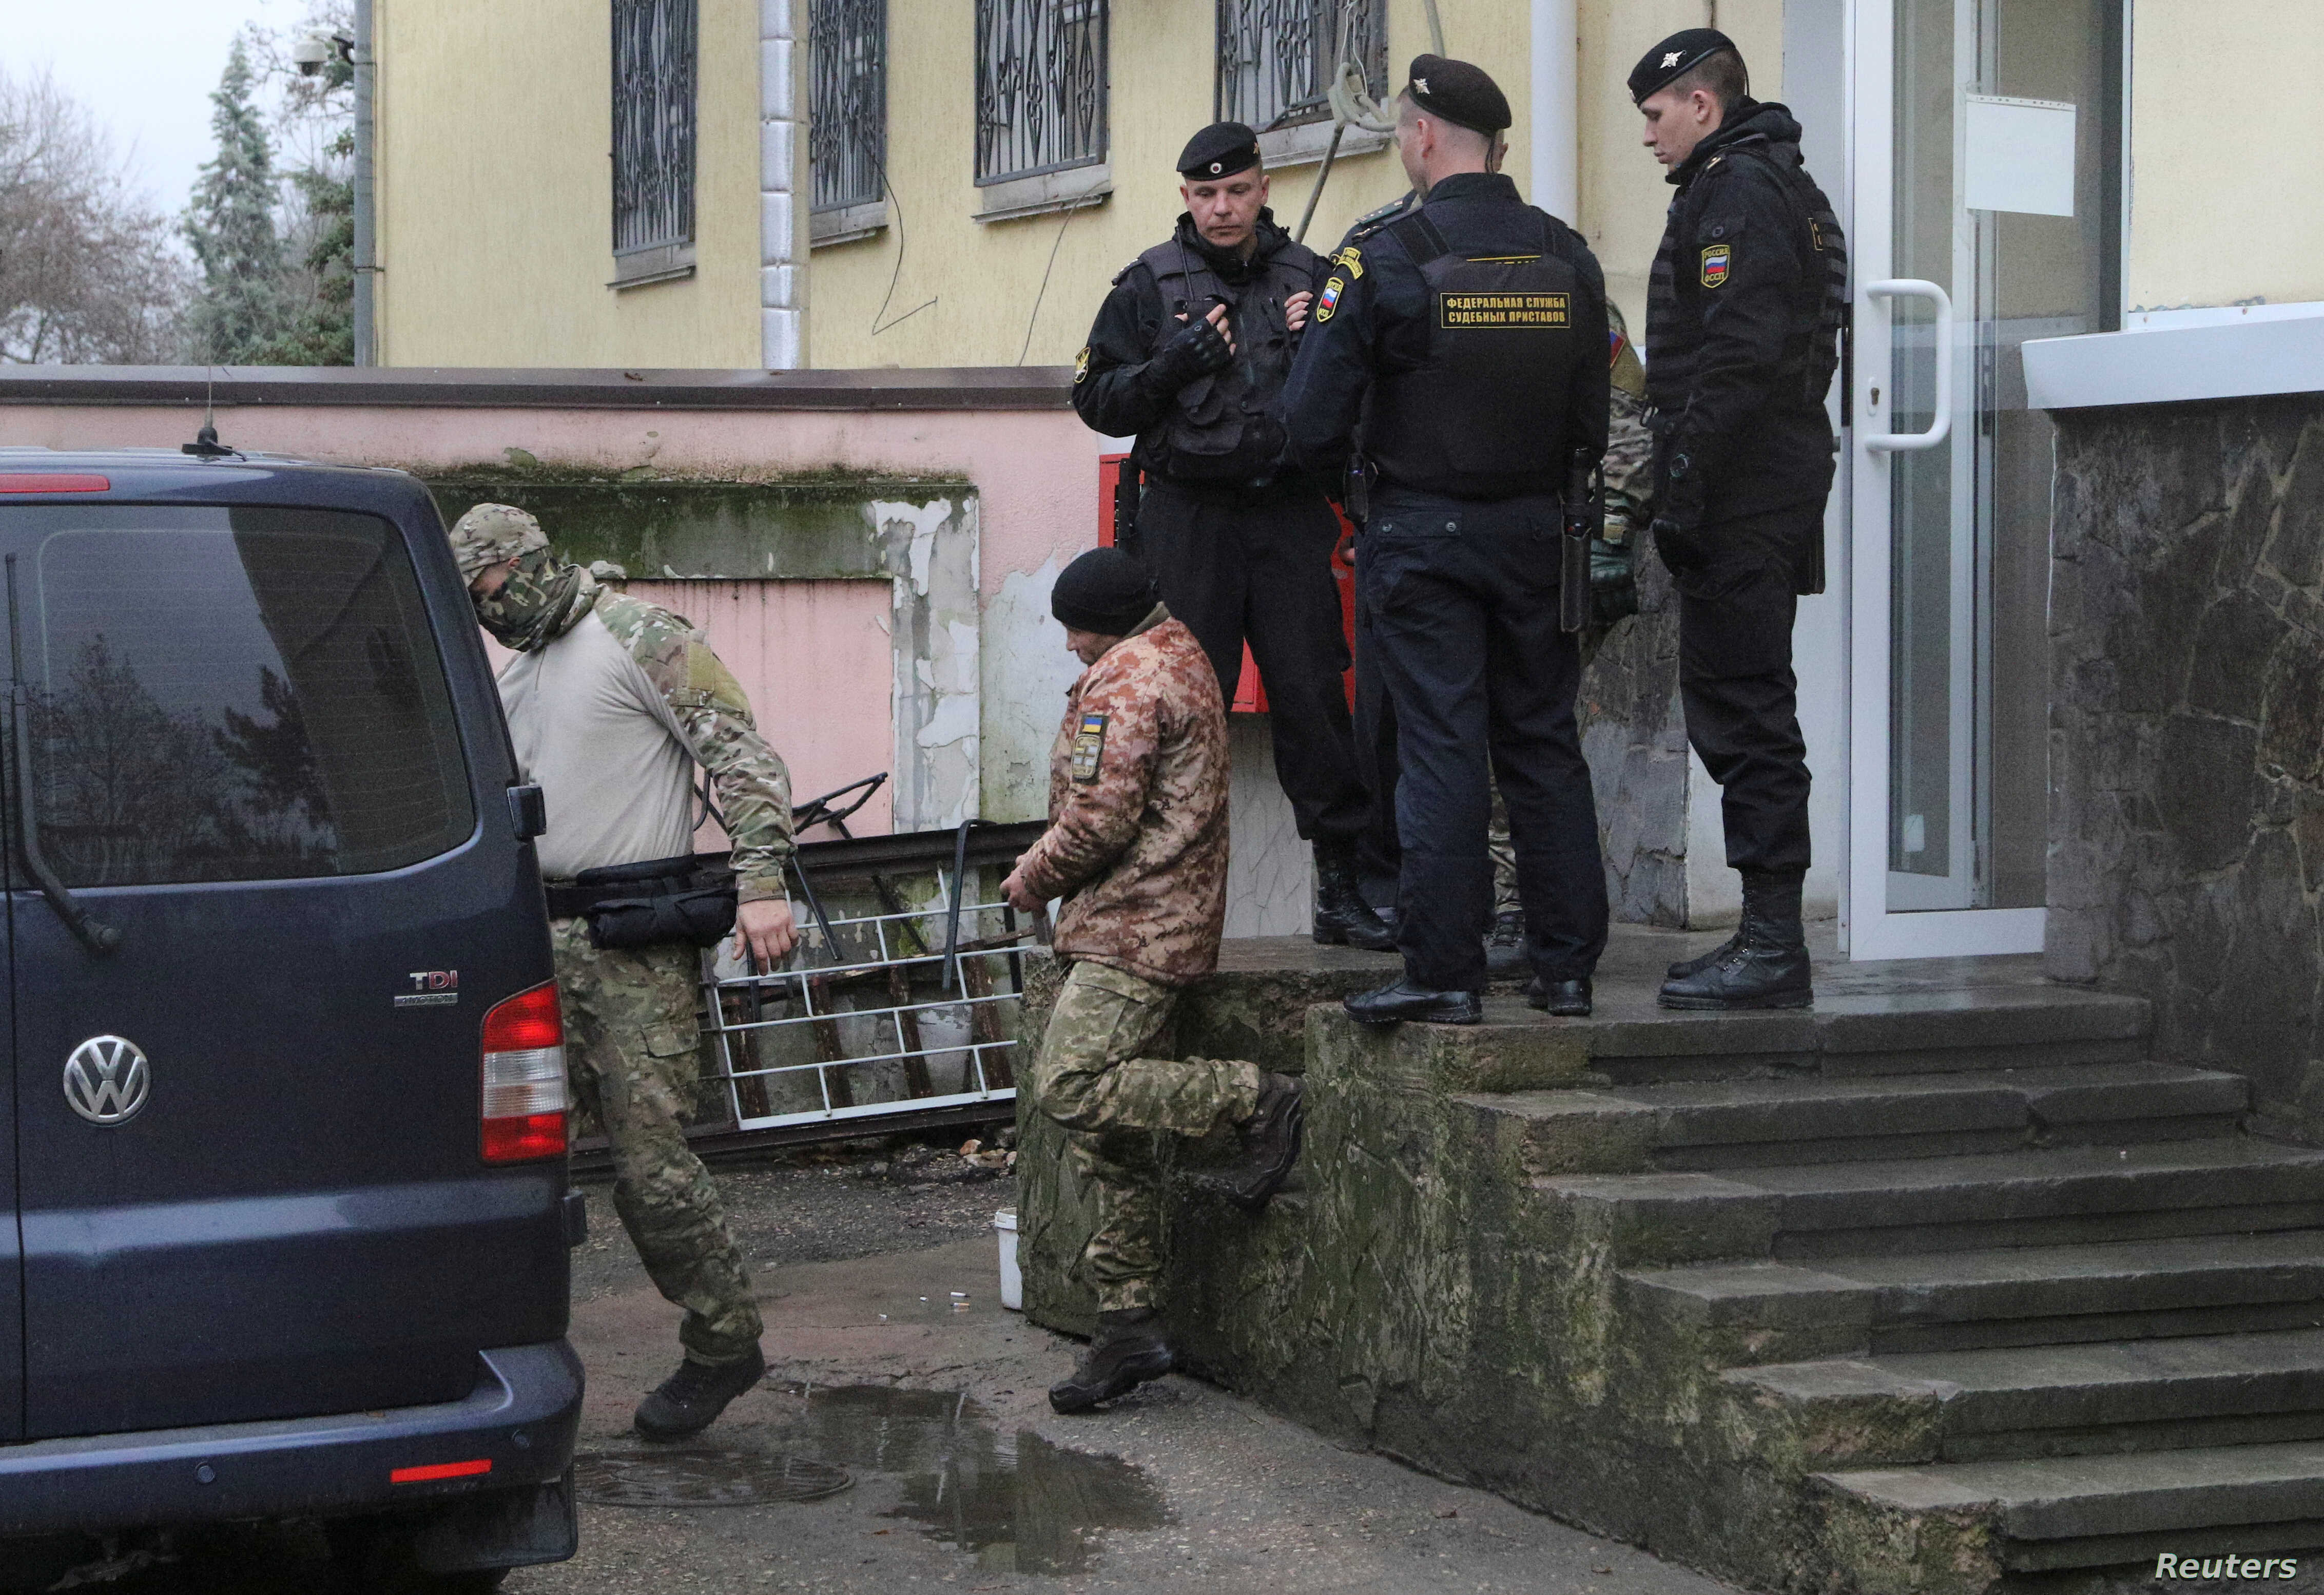 A crew member (C) of one of three Ukrainian naval ships, which were attacked and seized by Russia Sunday, is escorted after a court hearing in Simferopol, in Russia-annexed Crimea, Nov. 27, 2018.